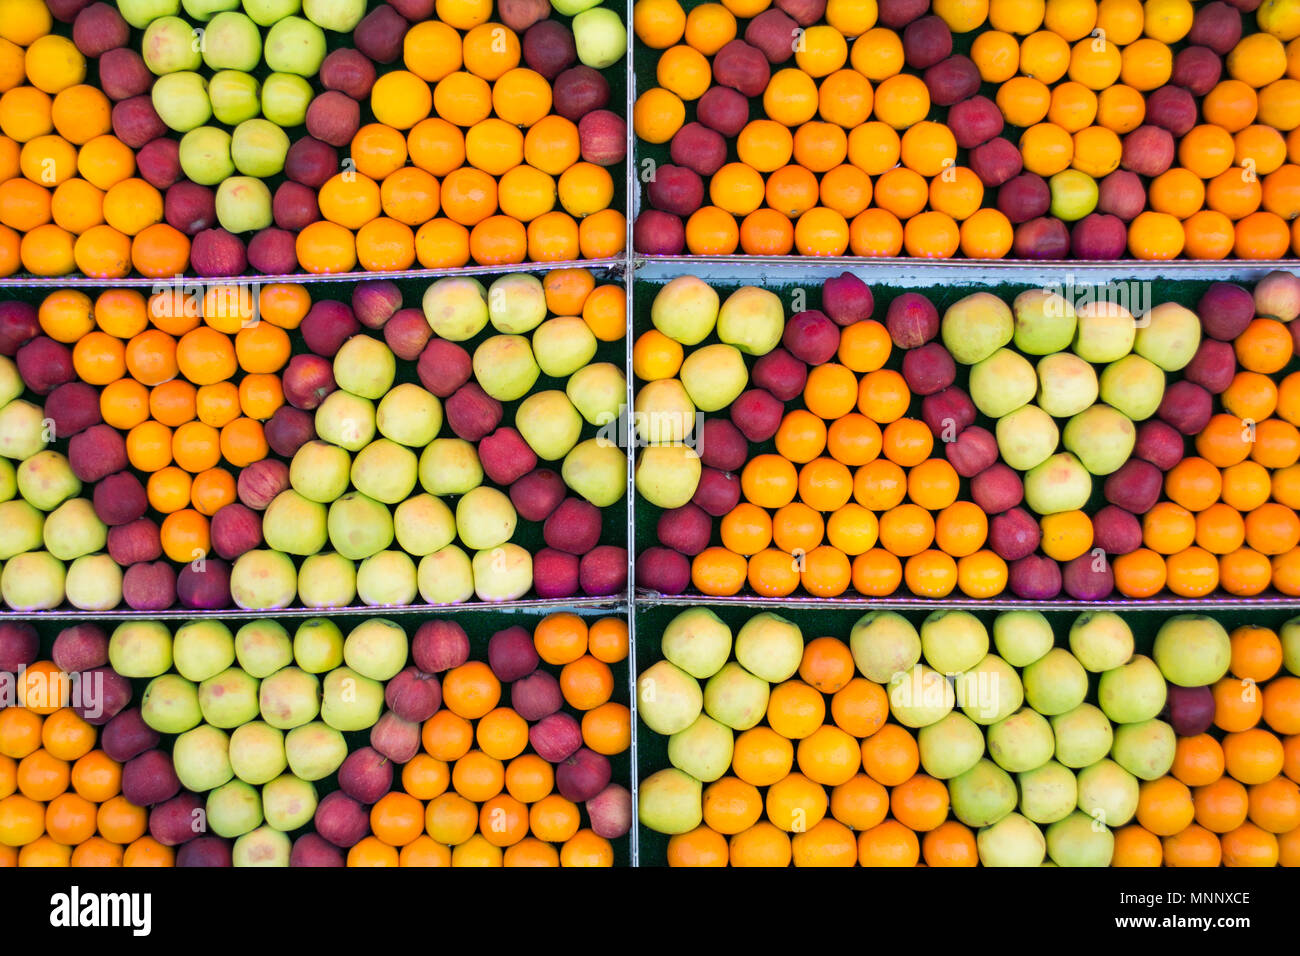 A mix of fresh Orange and green apple background - Stock Image